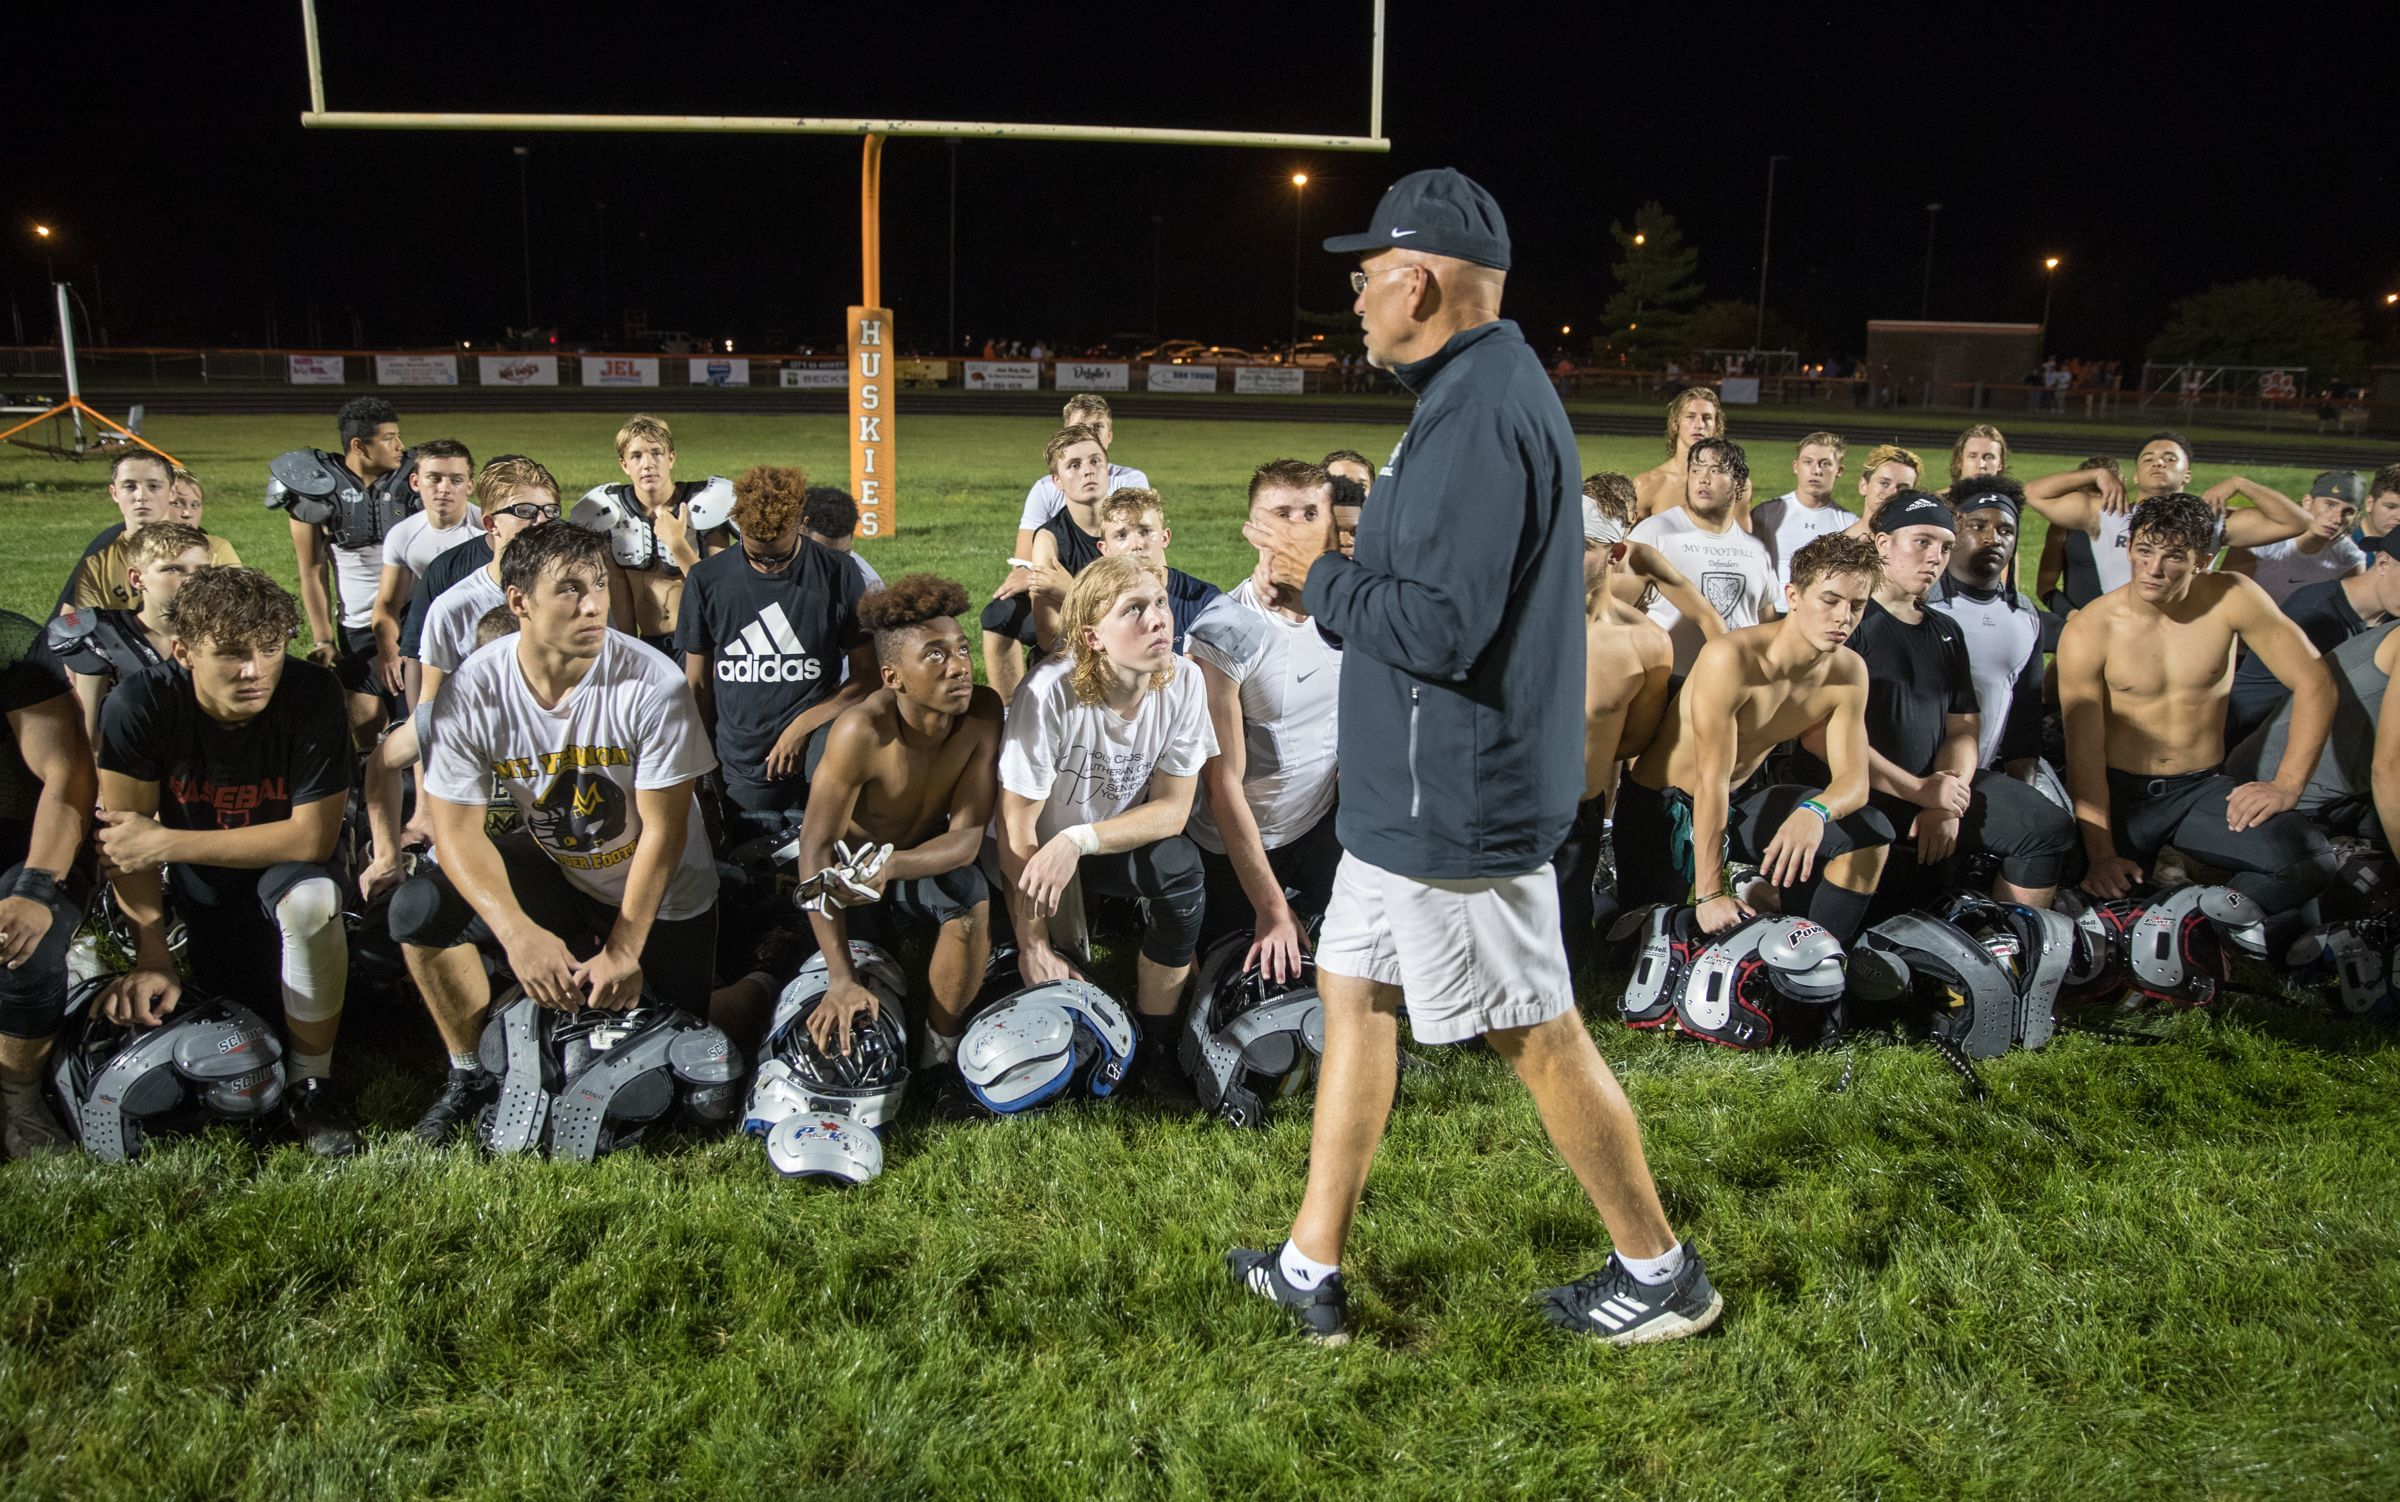 Mike Kirschner begins his second season in charge of Mt. Vernon.